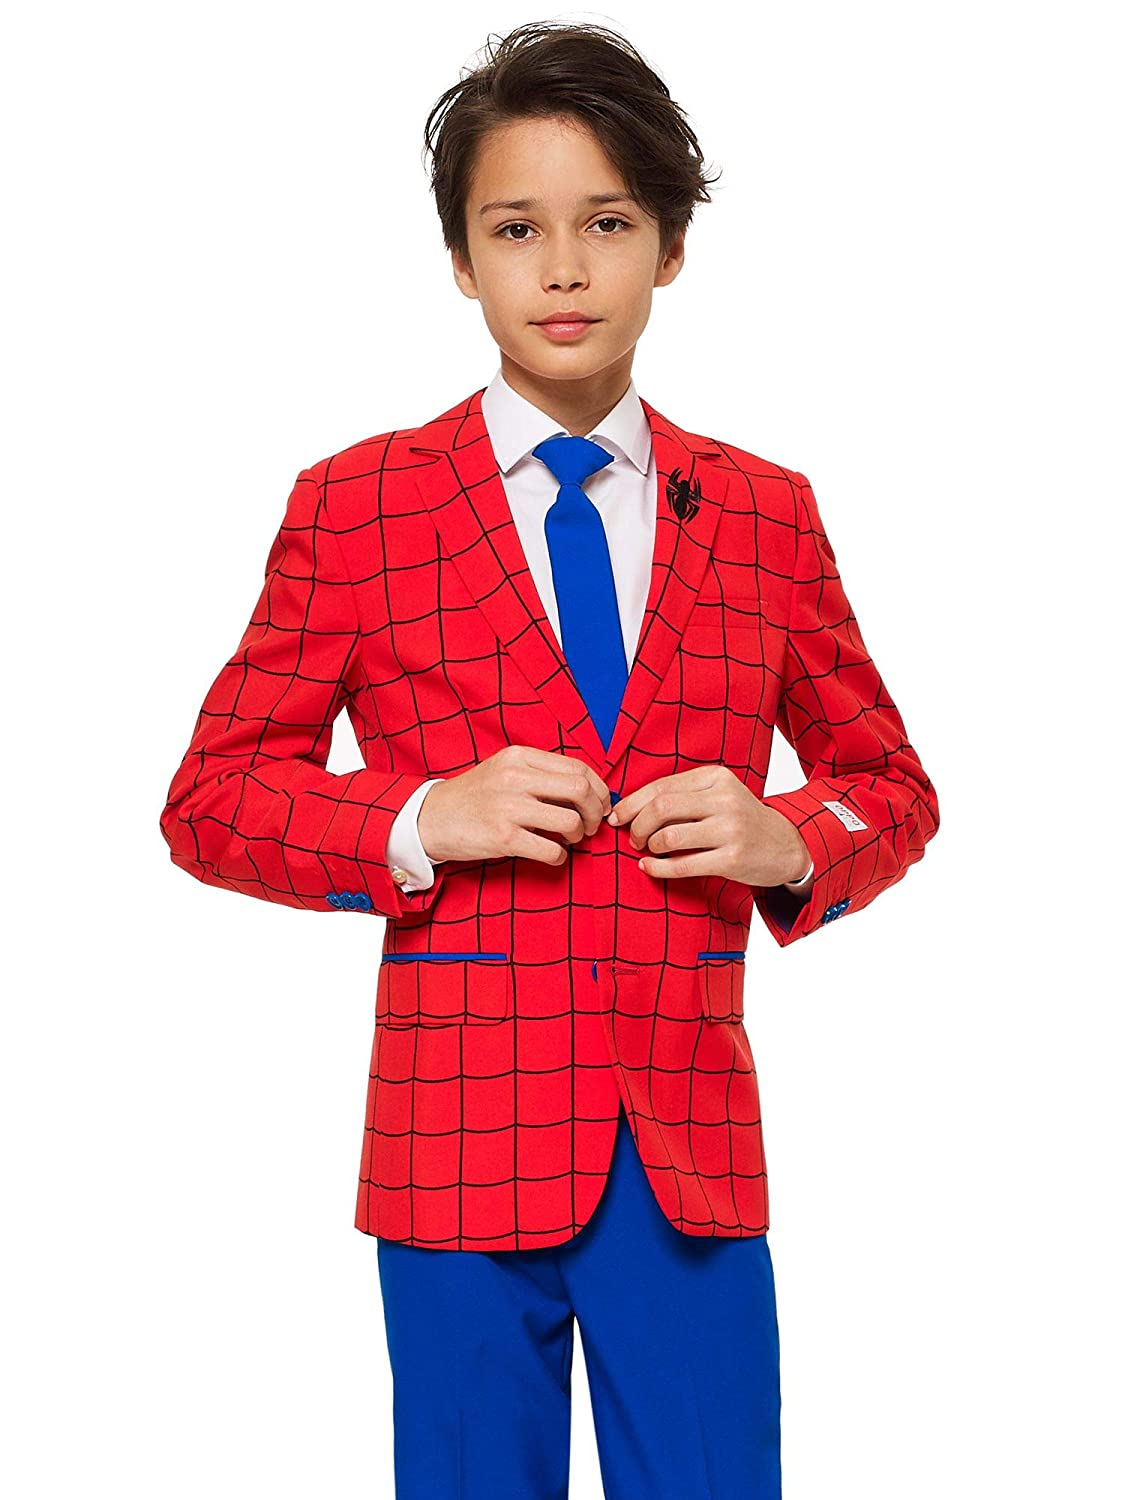 Opposuits Crazy Suits for Boys in Different Prints – Comes with Jacket, Pants and Tie In Funny Designs Spider-man